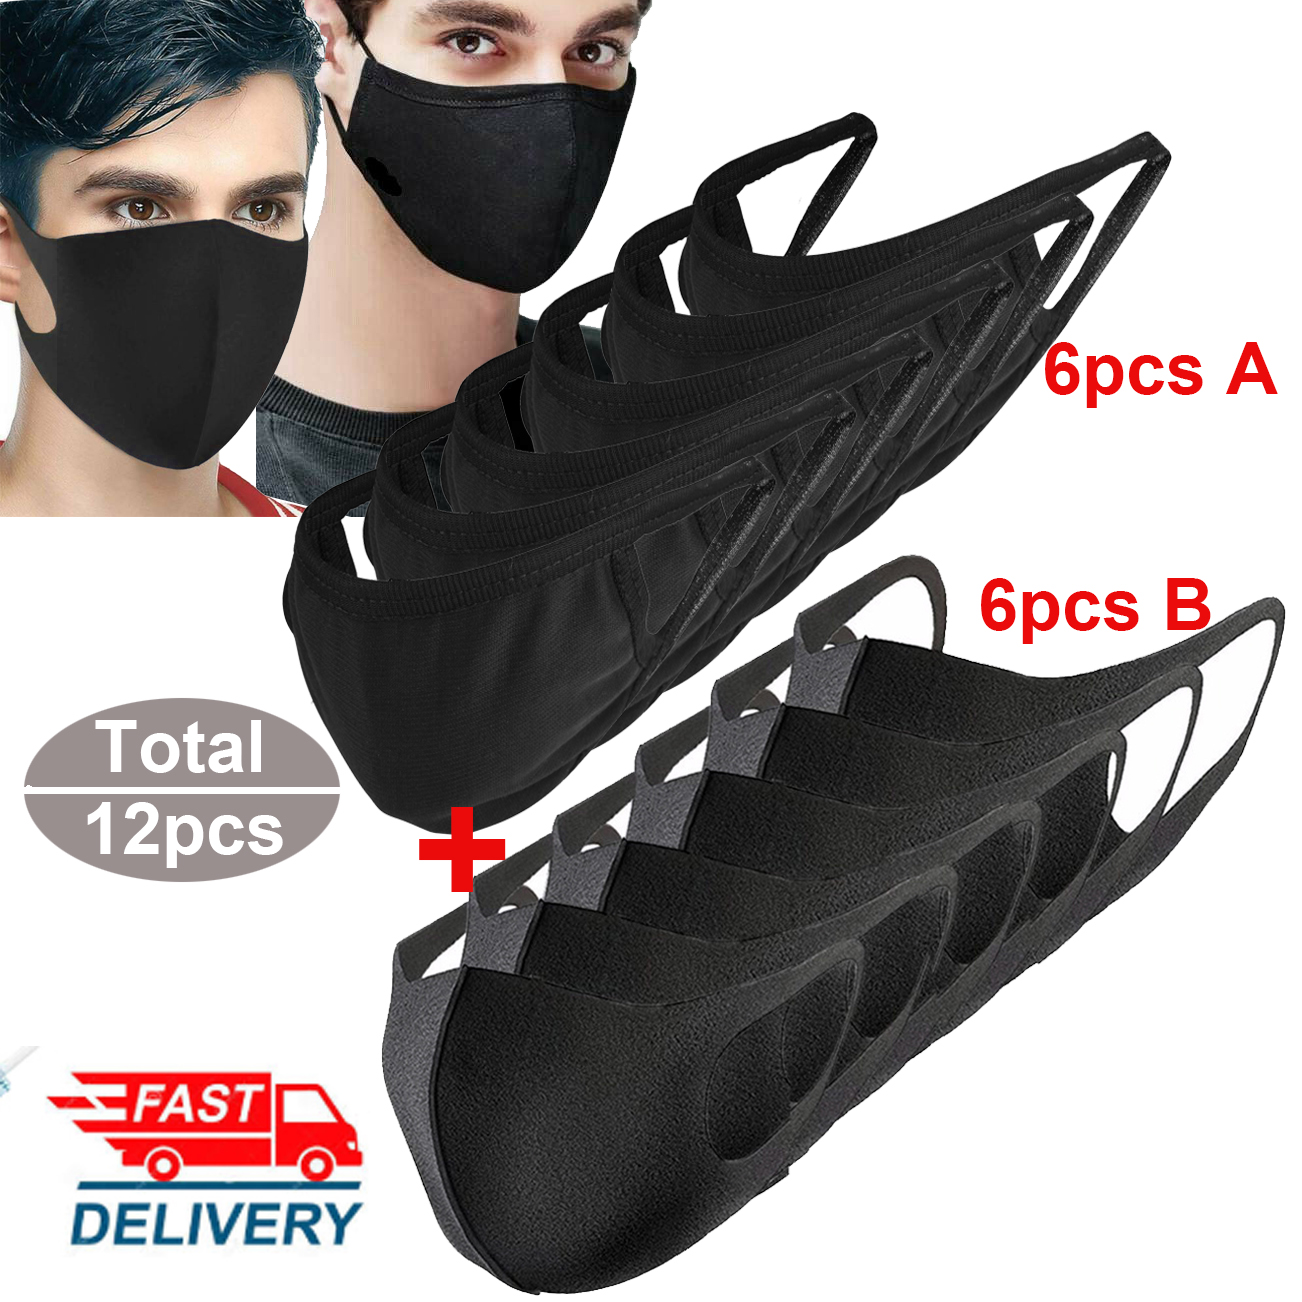 12pcs Cotton Mouth Mask Ice Silk  Summer Washablle Breathable Dustproof Anti-fog PM2.5 Dust Mask Protective Masks